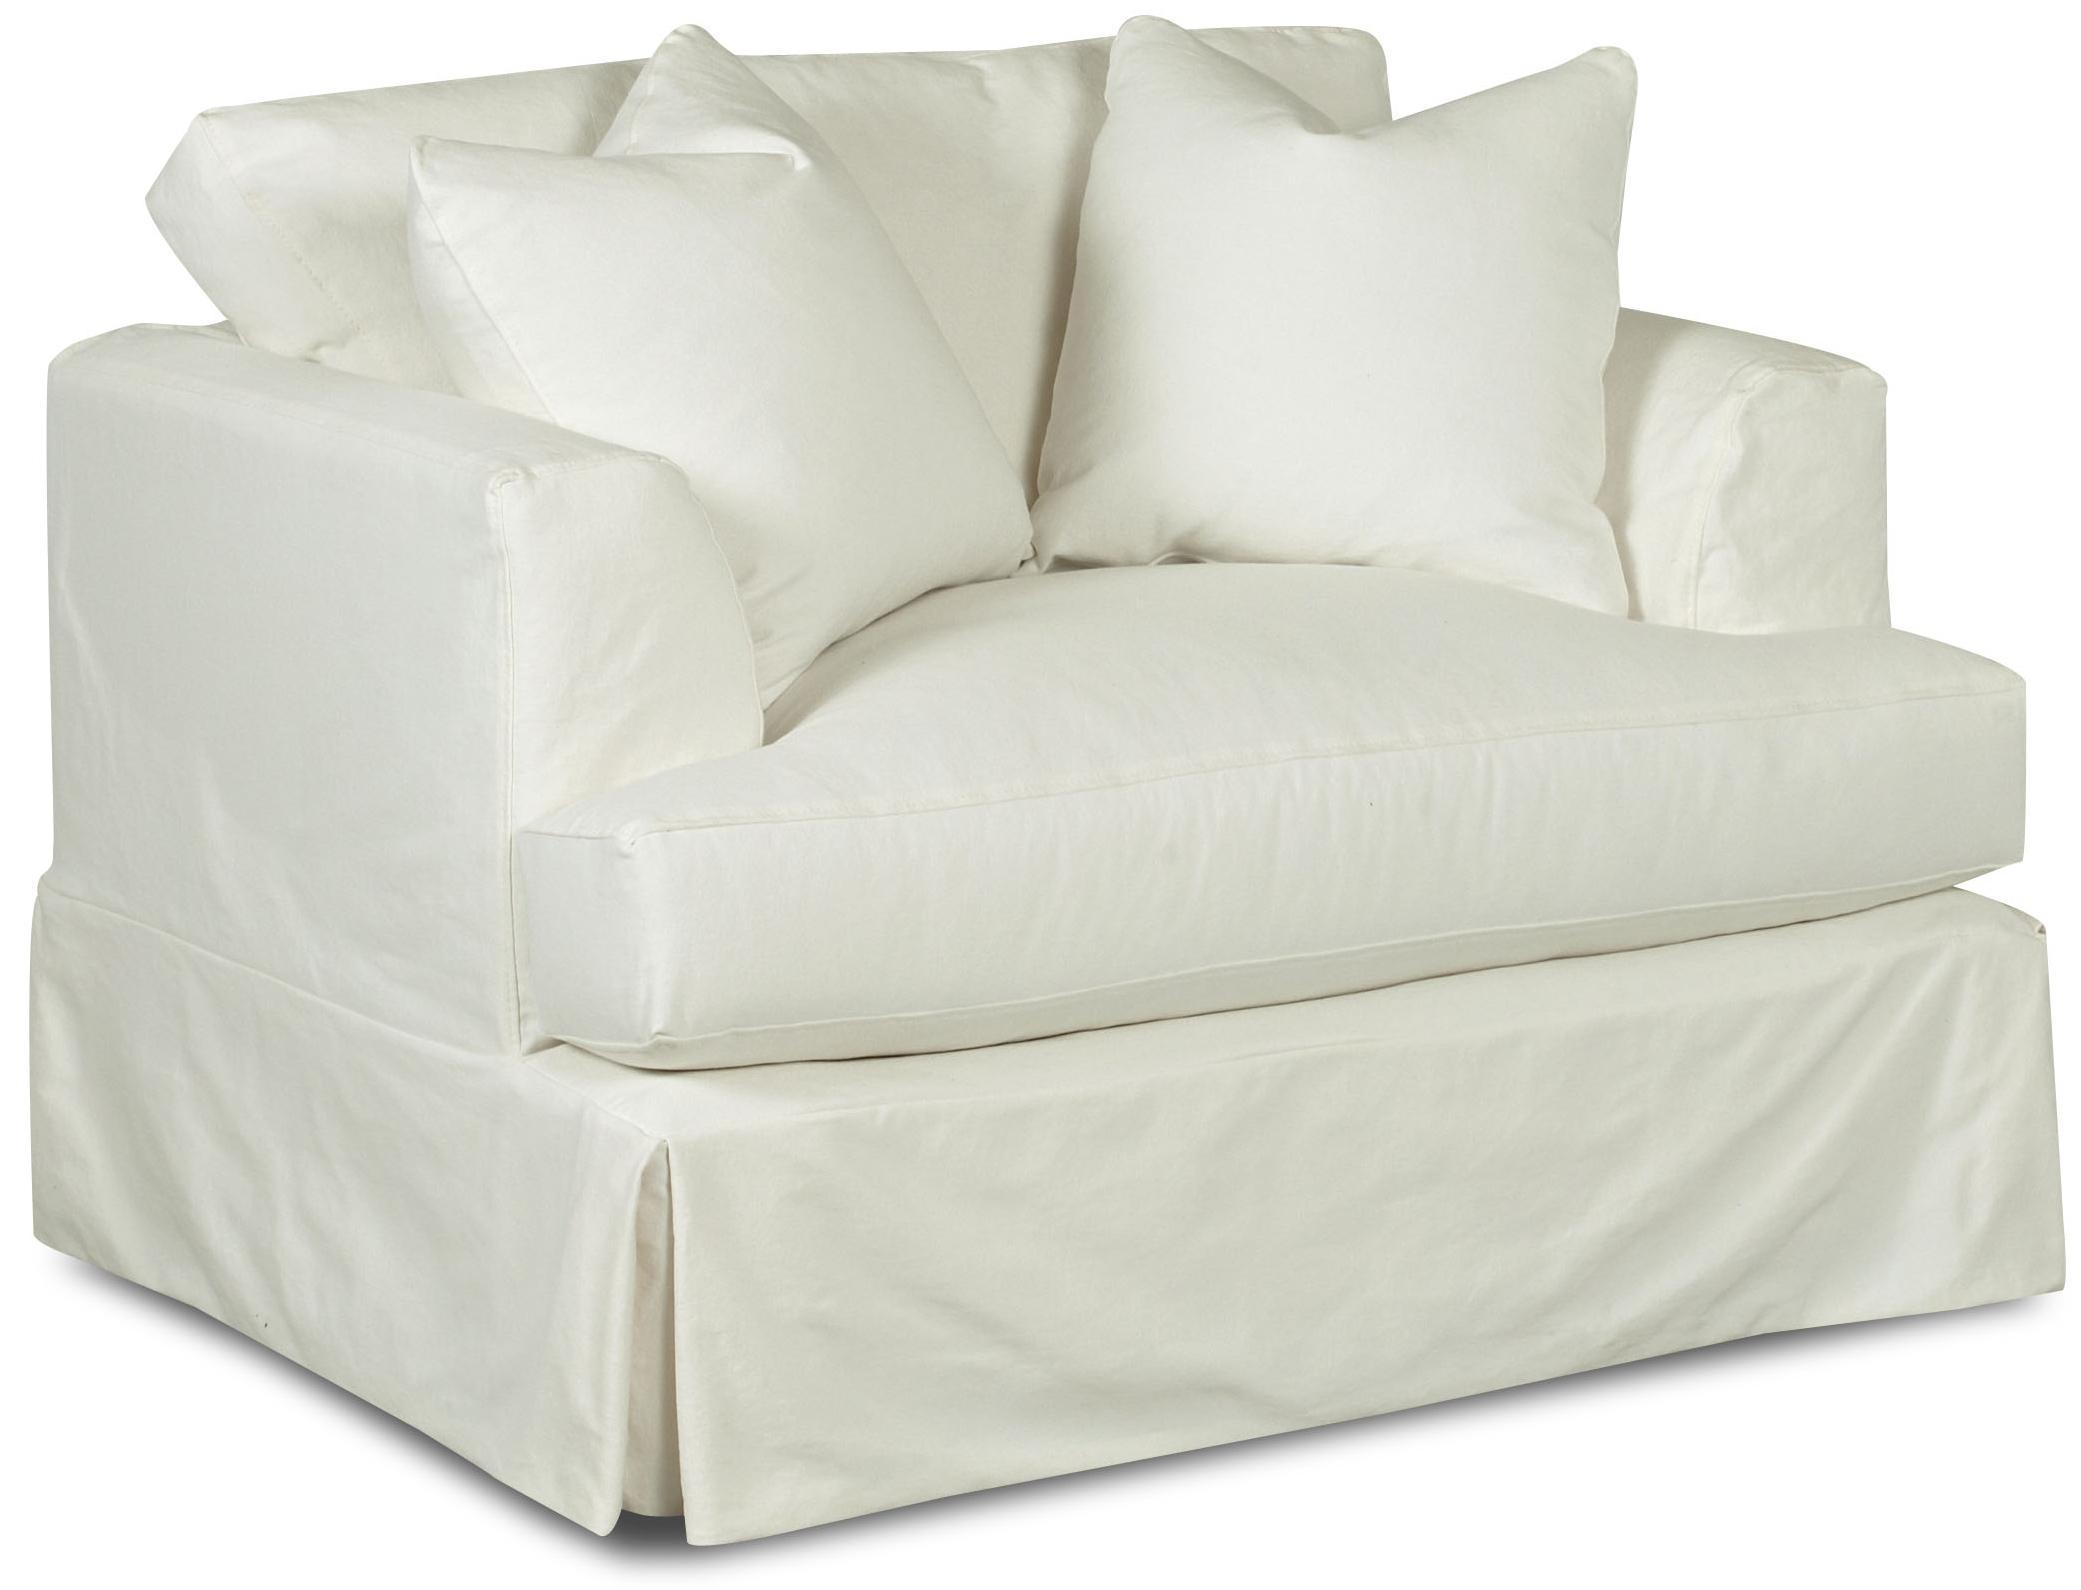 Slip Covers Chair And Quality Interiors | Sofa Slipcover | Chair Inside Sofa And Chair Slipcovers (Image 16 of 20)